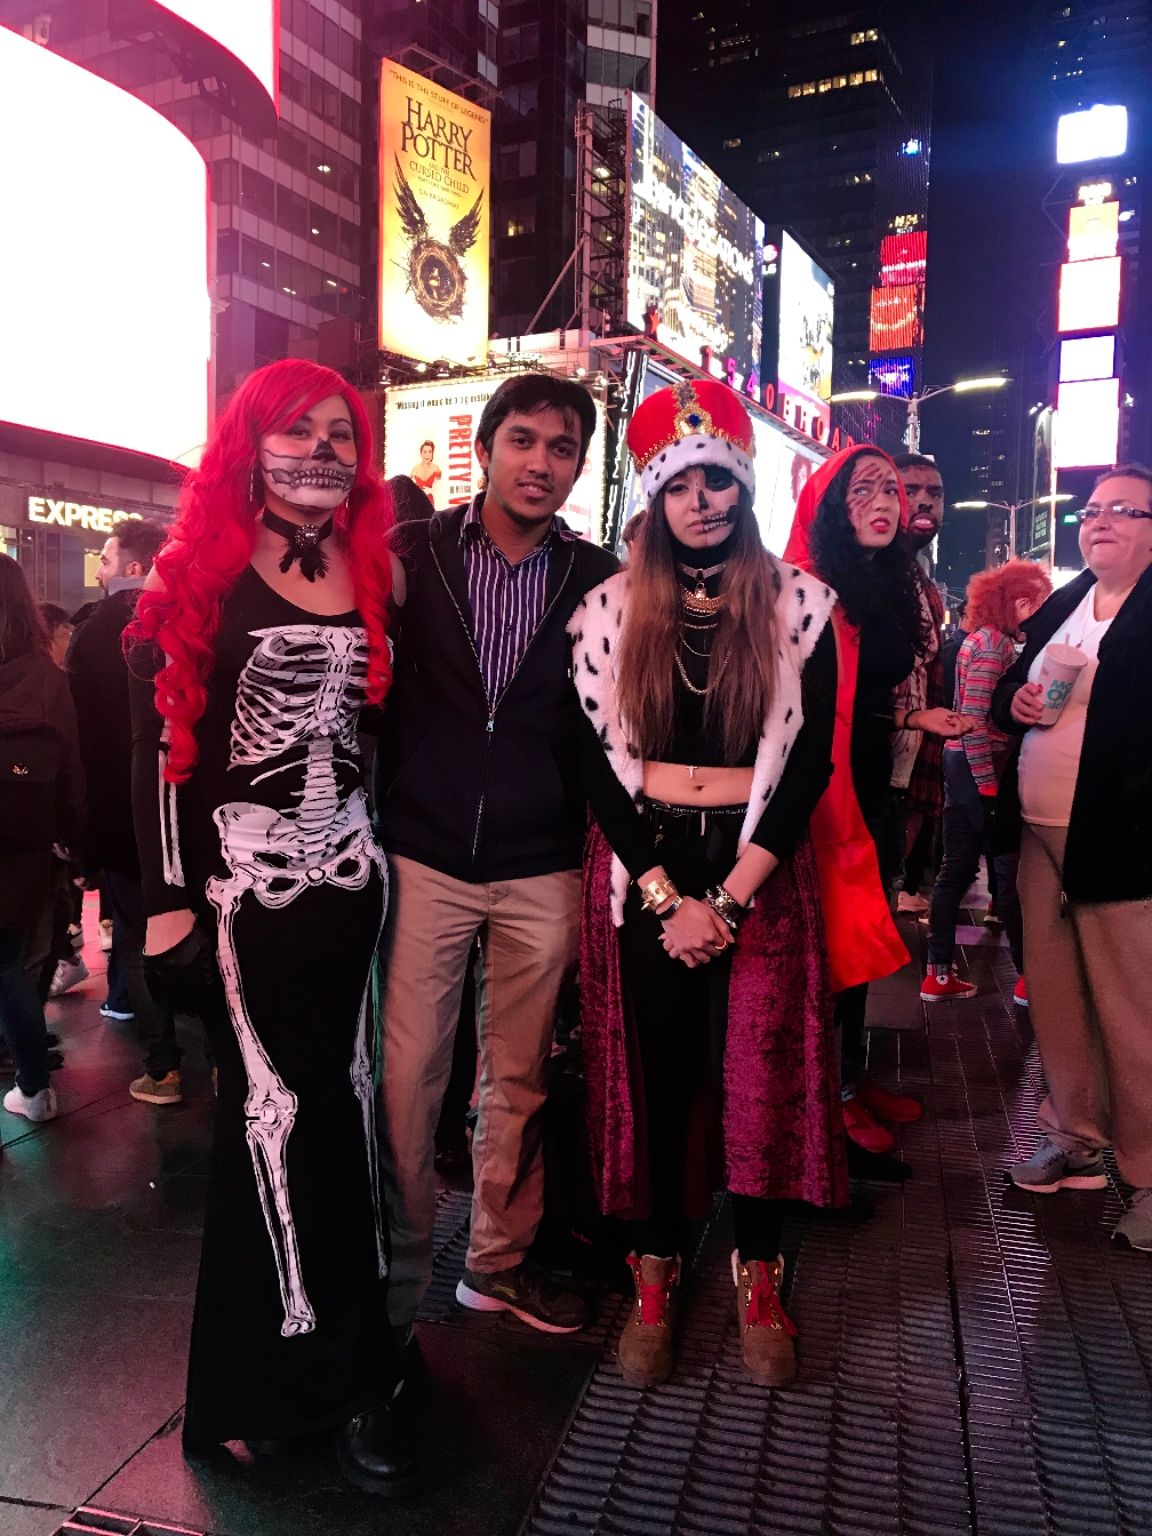 Photo of Times Square By Ifreed Athani